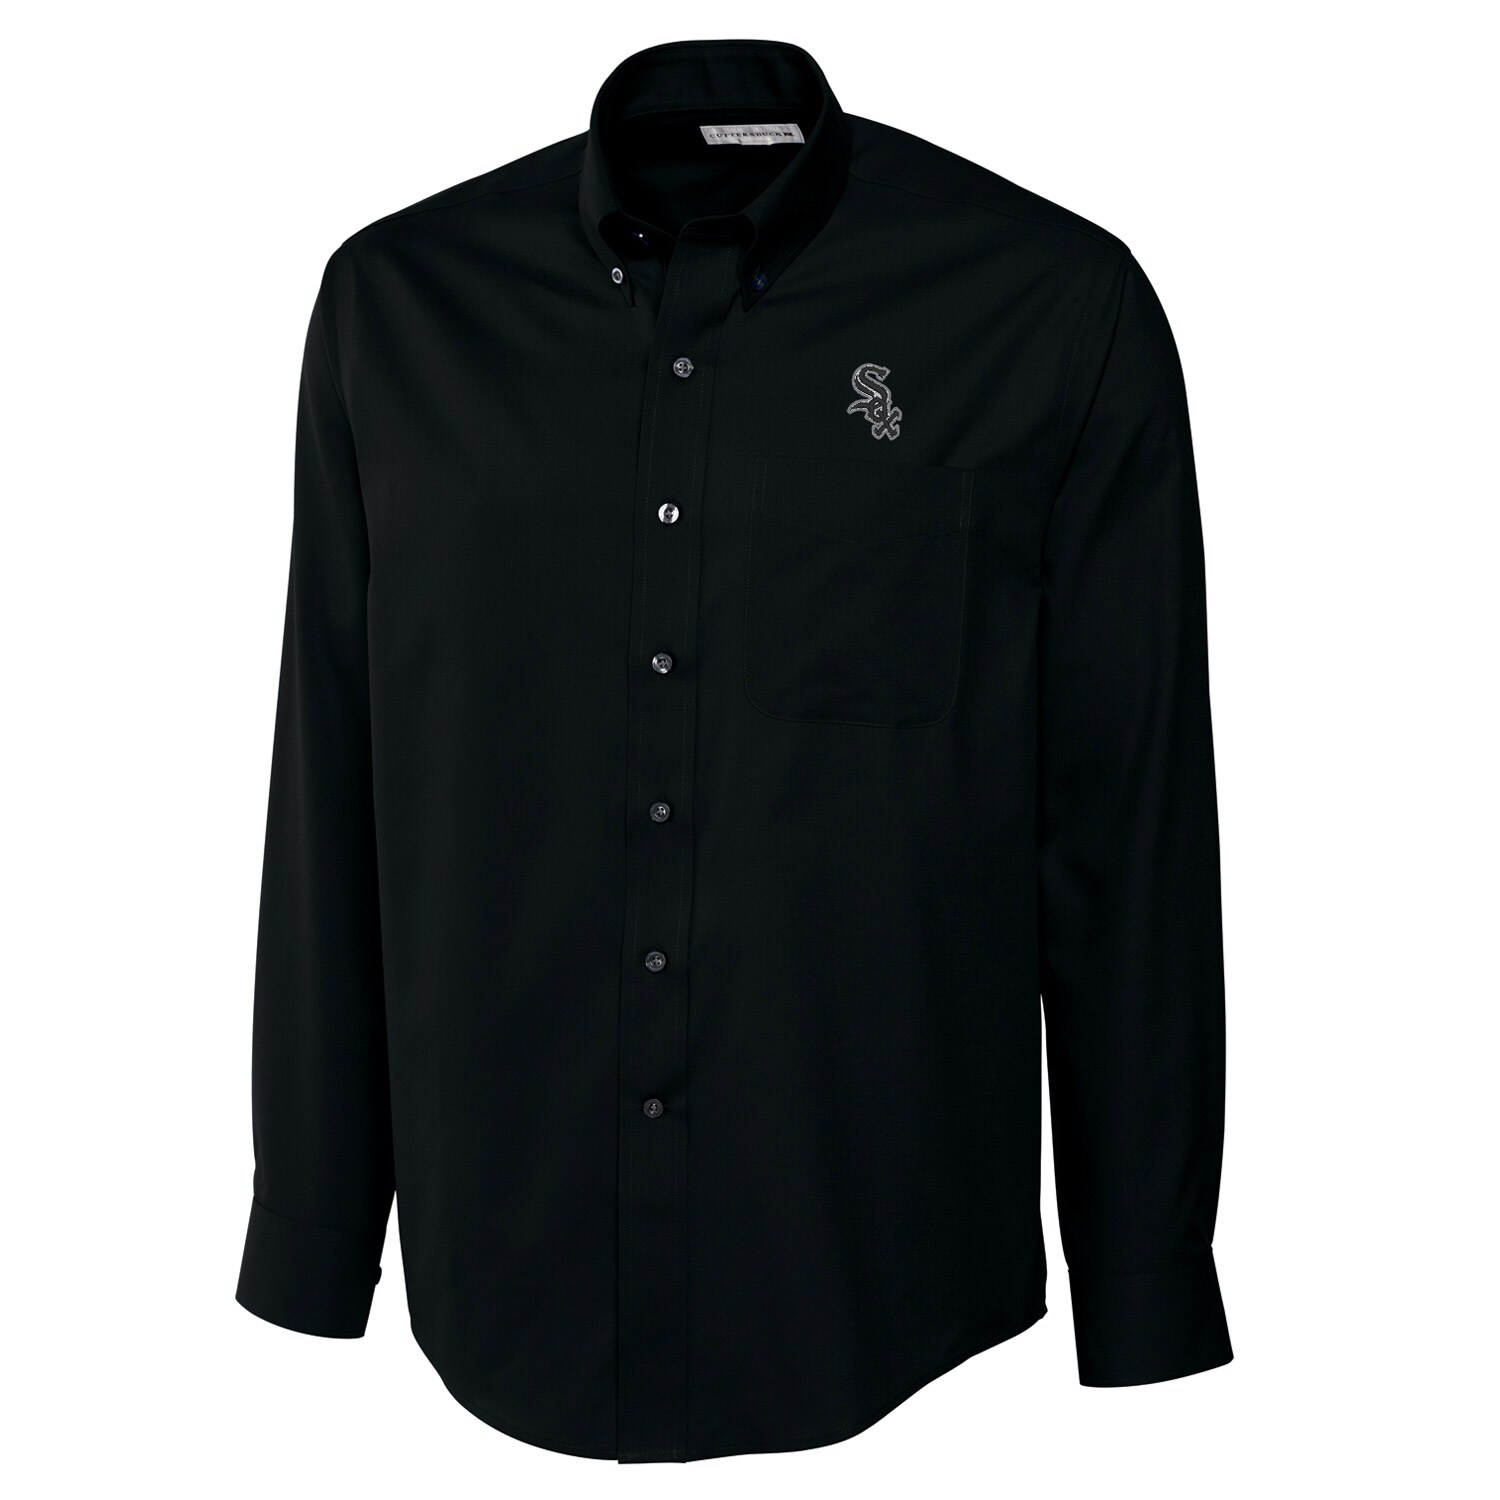 Chicago White Sox Cutter & Buck Big & Tall Epic Easy Care Fine Twill Long Sleeve Shirt - Black